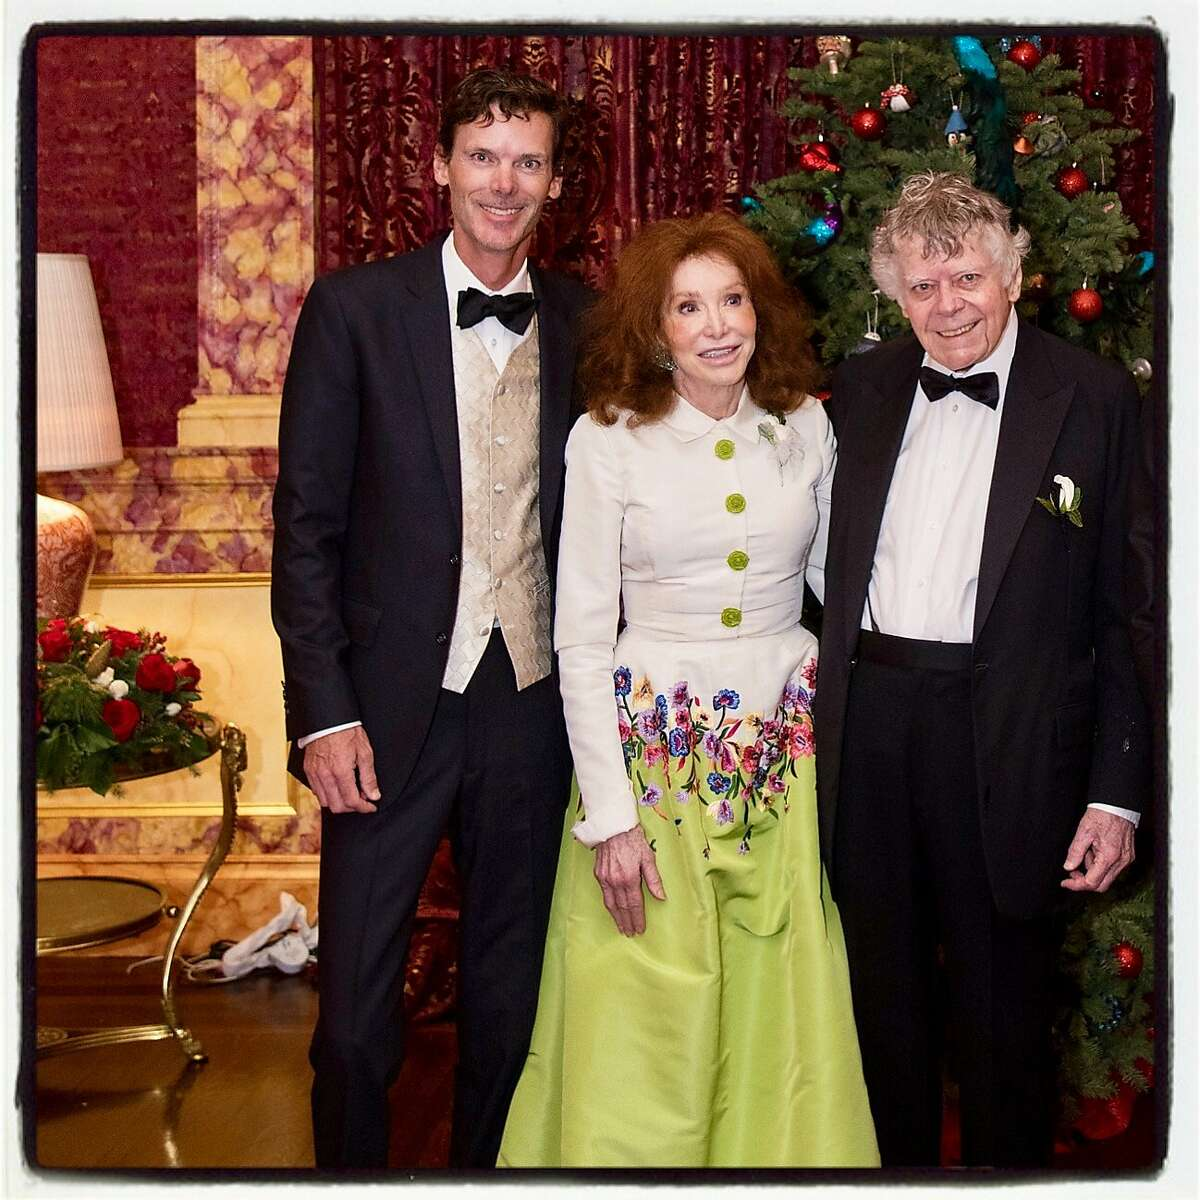 Bill Getty (left with his parents, Ann and Gordon Getty celebrate the wedding of Shannon and Peter Getty. Dec 2016